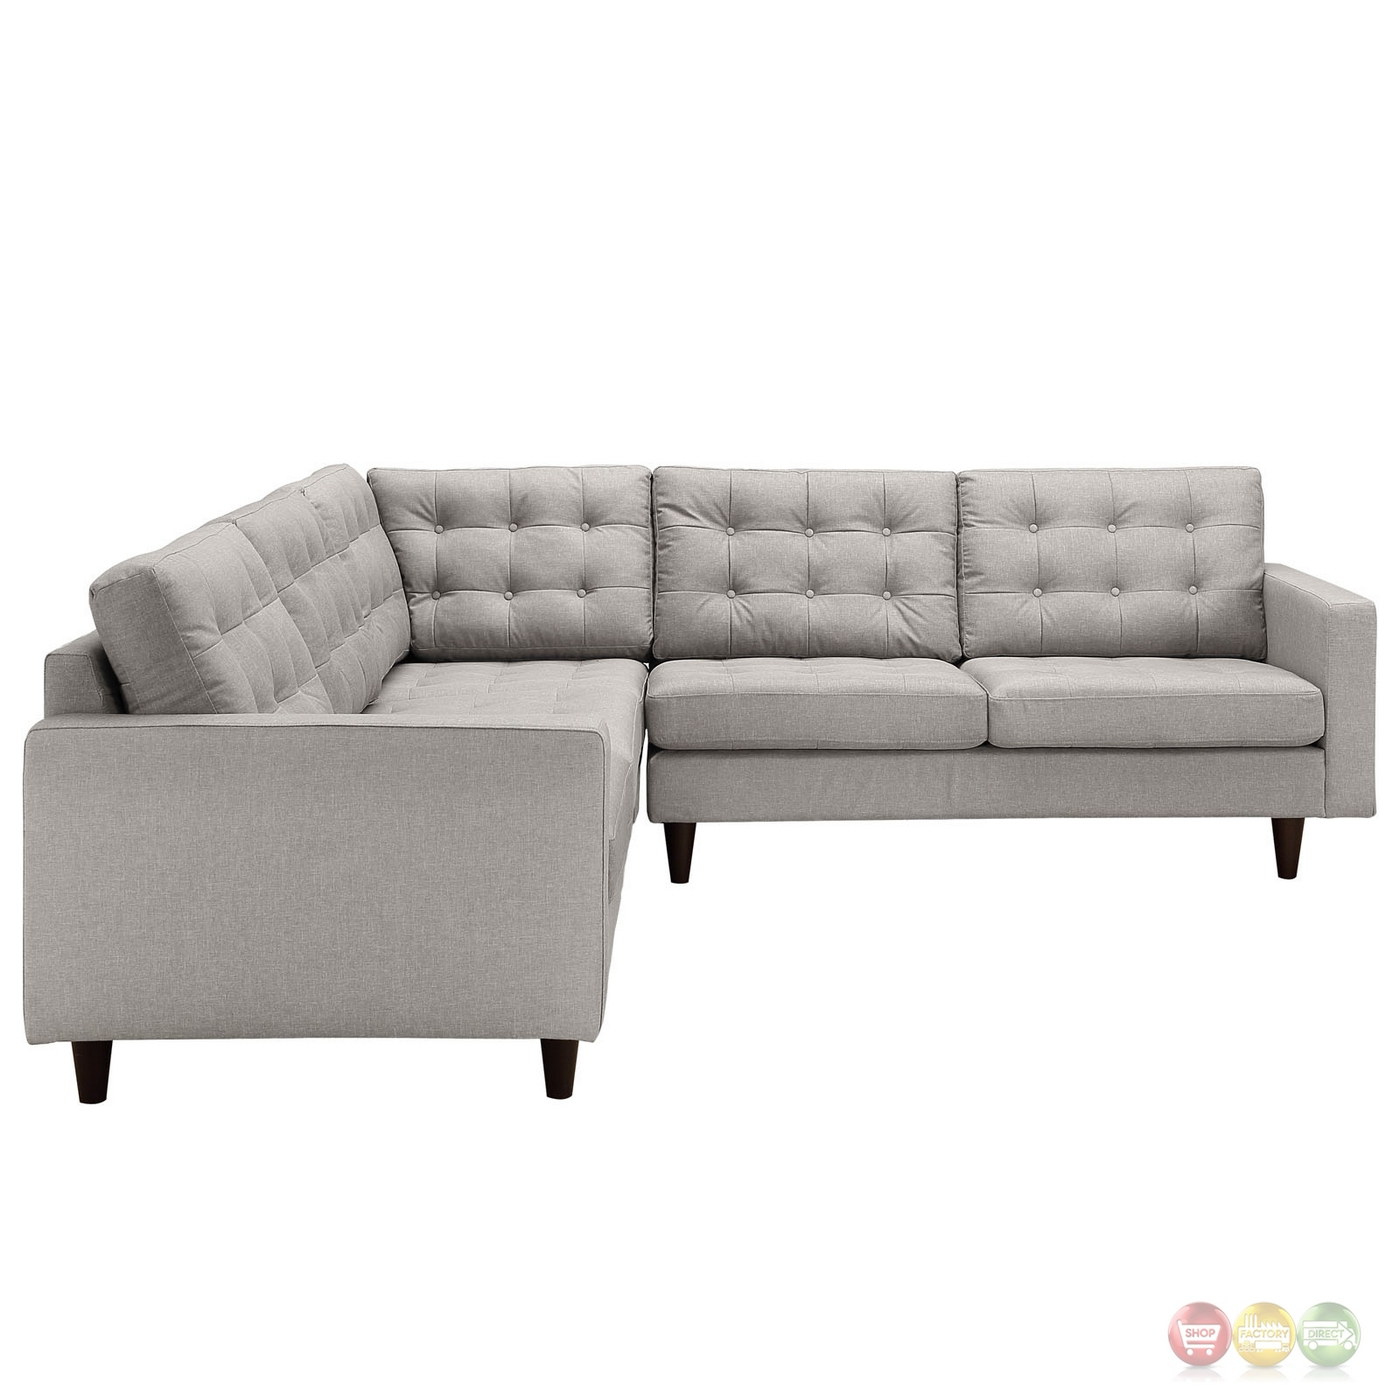 empress 3 piece button tufted upholstered sectional sofa set light gray. Black Bedroom Furniture Sets. Home Design Ideas